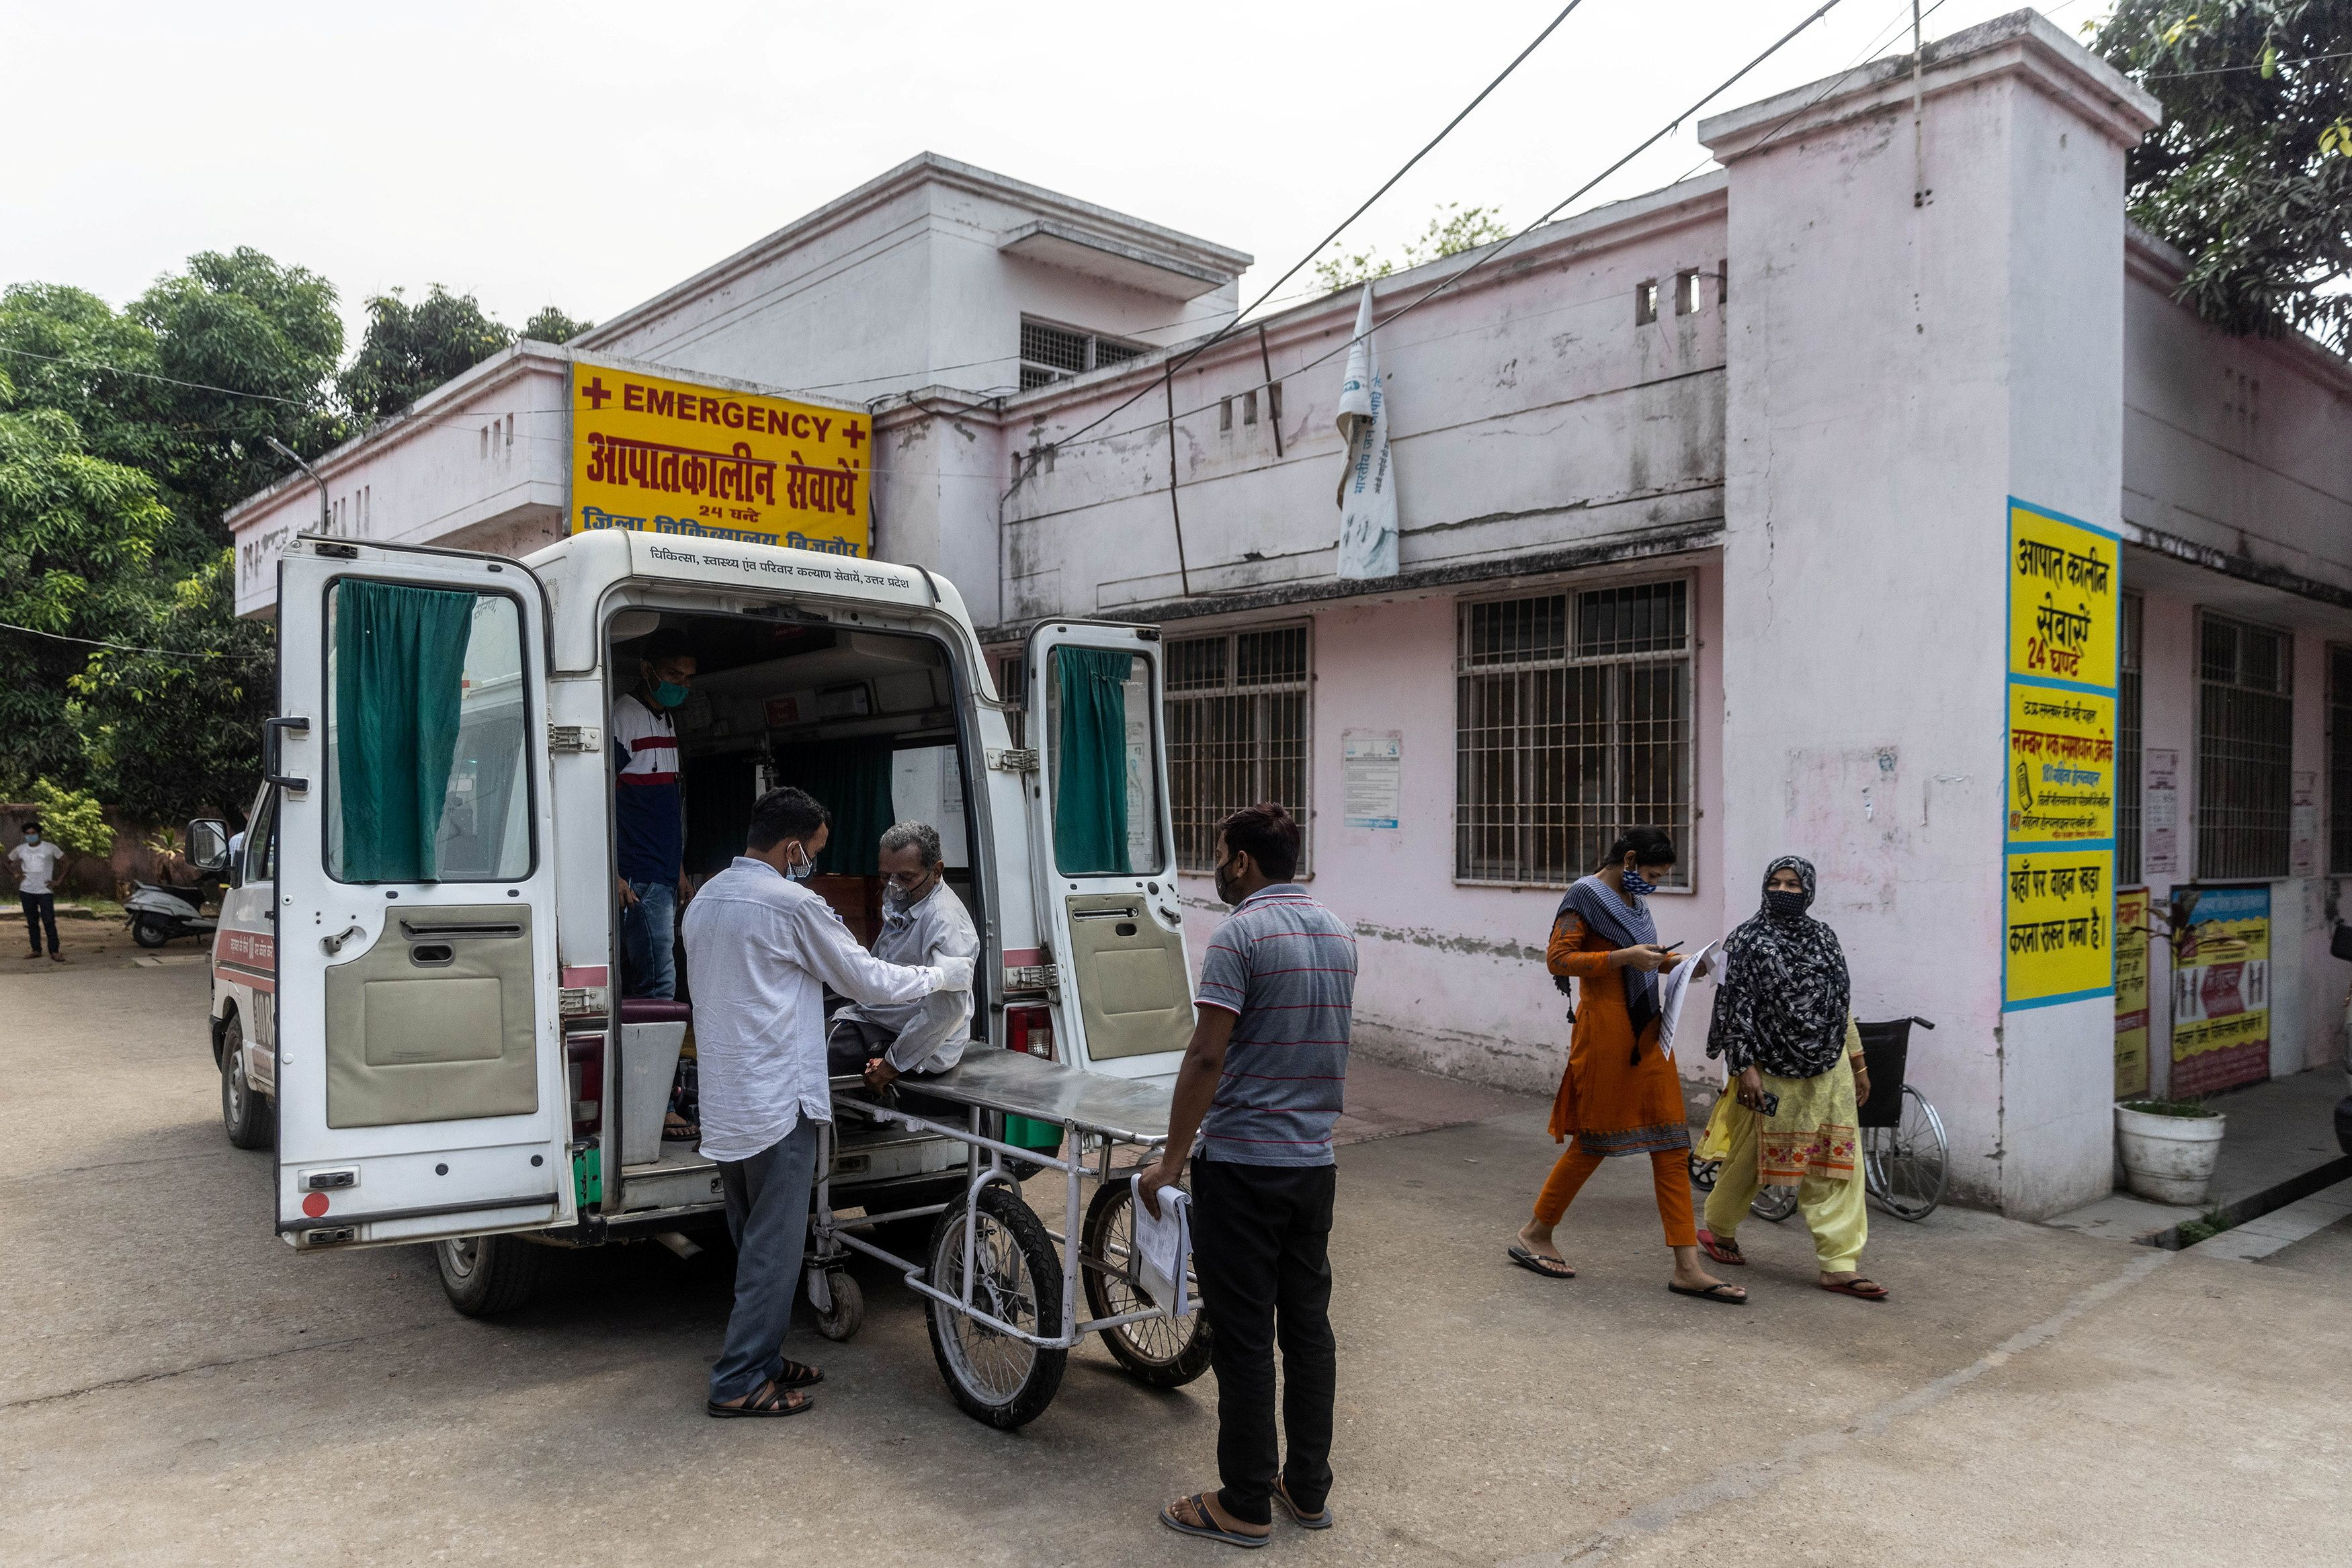 Relatives help Jagdish Singh, 57, out of an ambulance outside a government-run hospital to receive treatment, amidst the coronavirus disease (COVID-19) pandemic, in Bijnor district, Uttar Pradesh, India, May 11, 2021. REUTERS/Danish Siddiqui